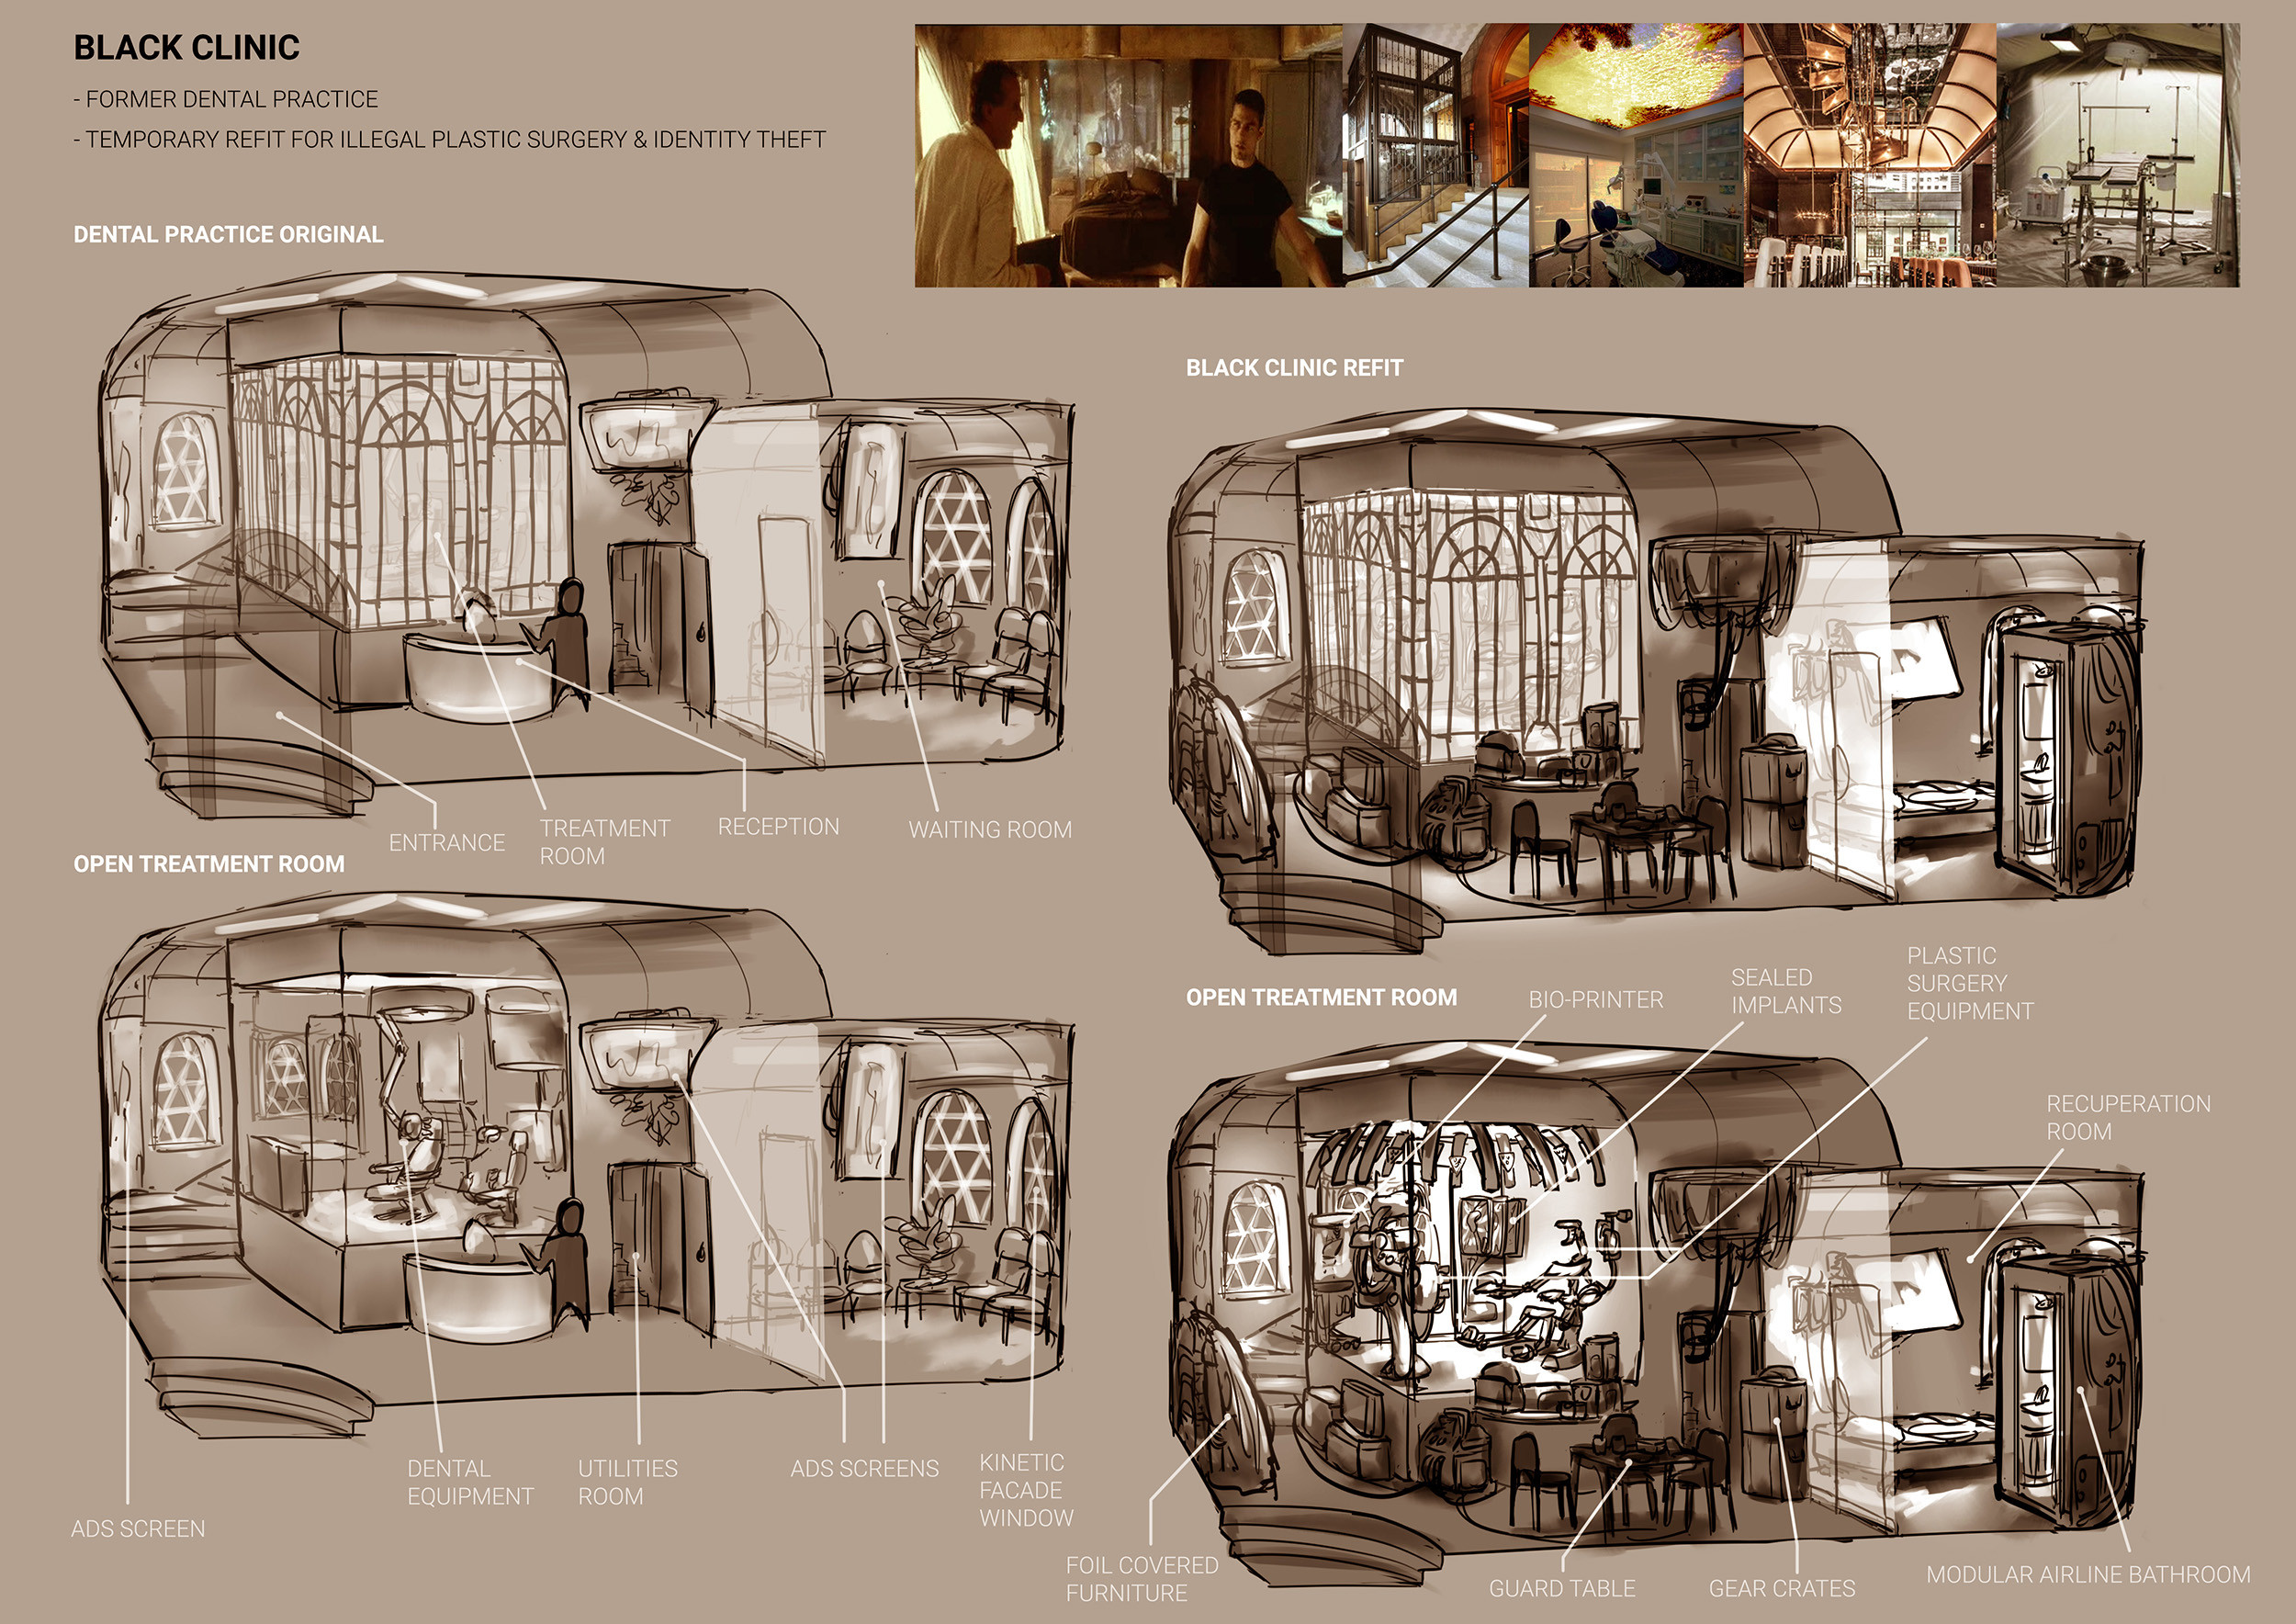 Room sketches